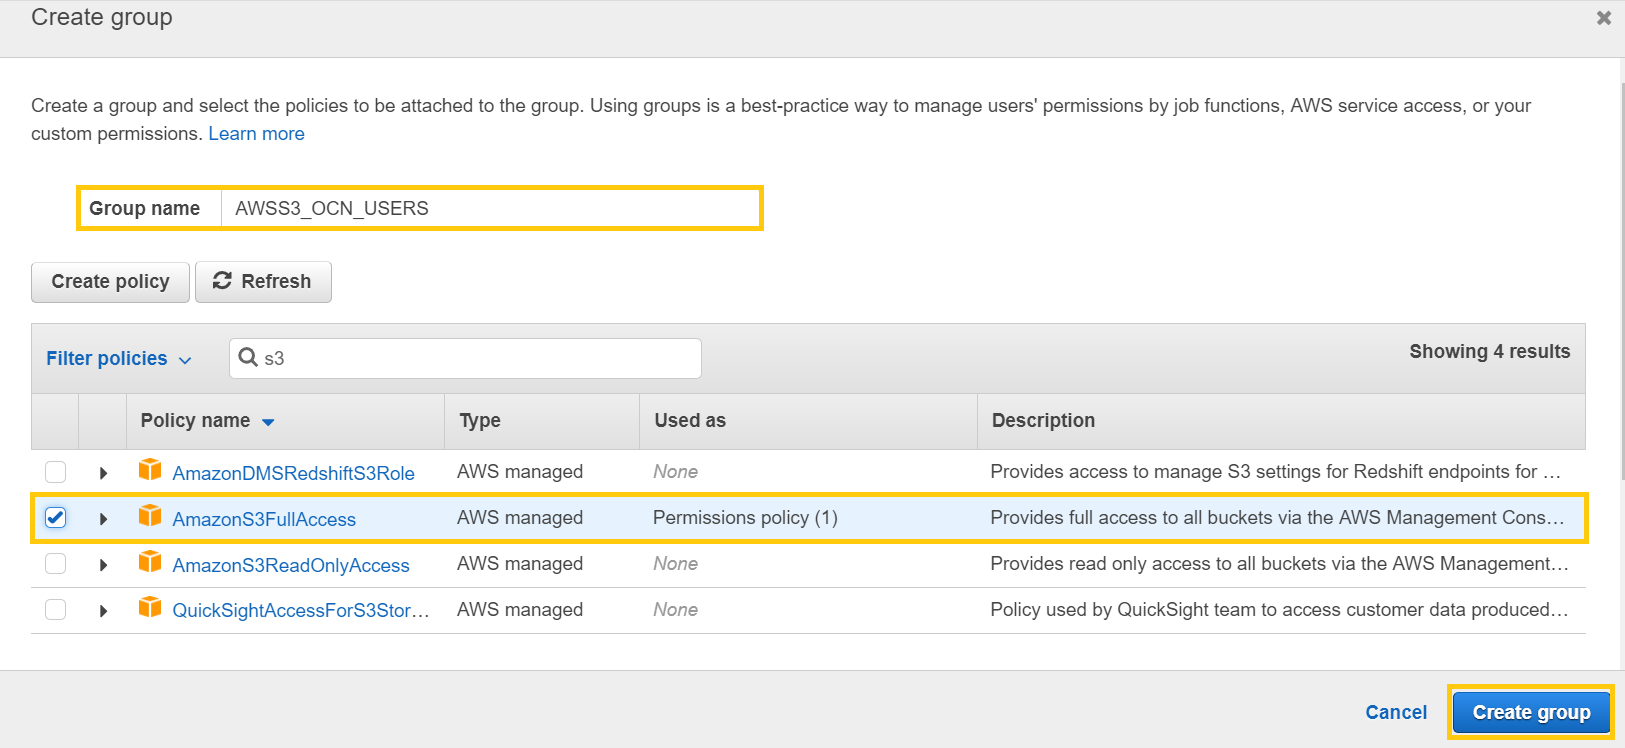 OpenConnectors-Amazon S3 Integration made simple with SAP